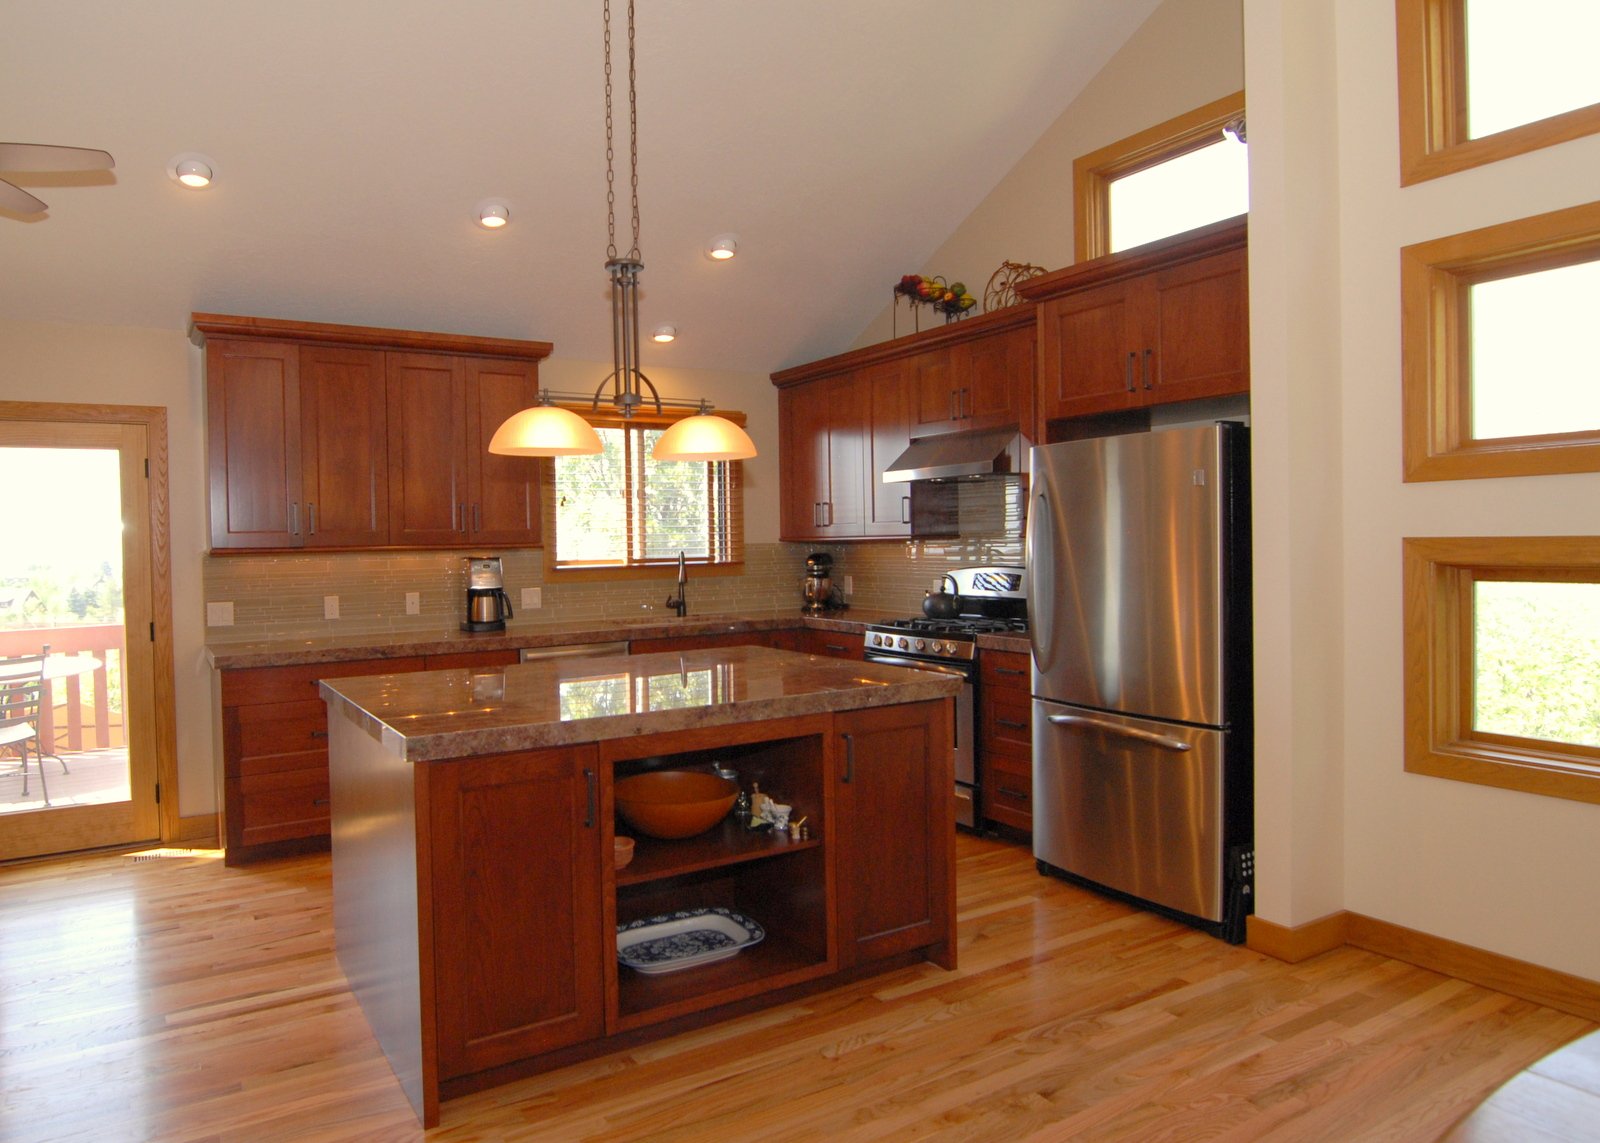 Enzy Living Recent Kitchen Remodel Before Amp After